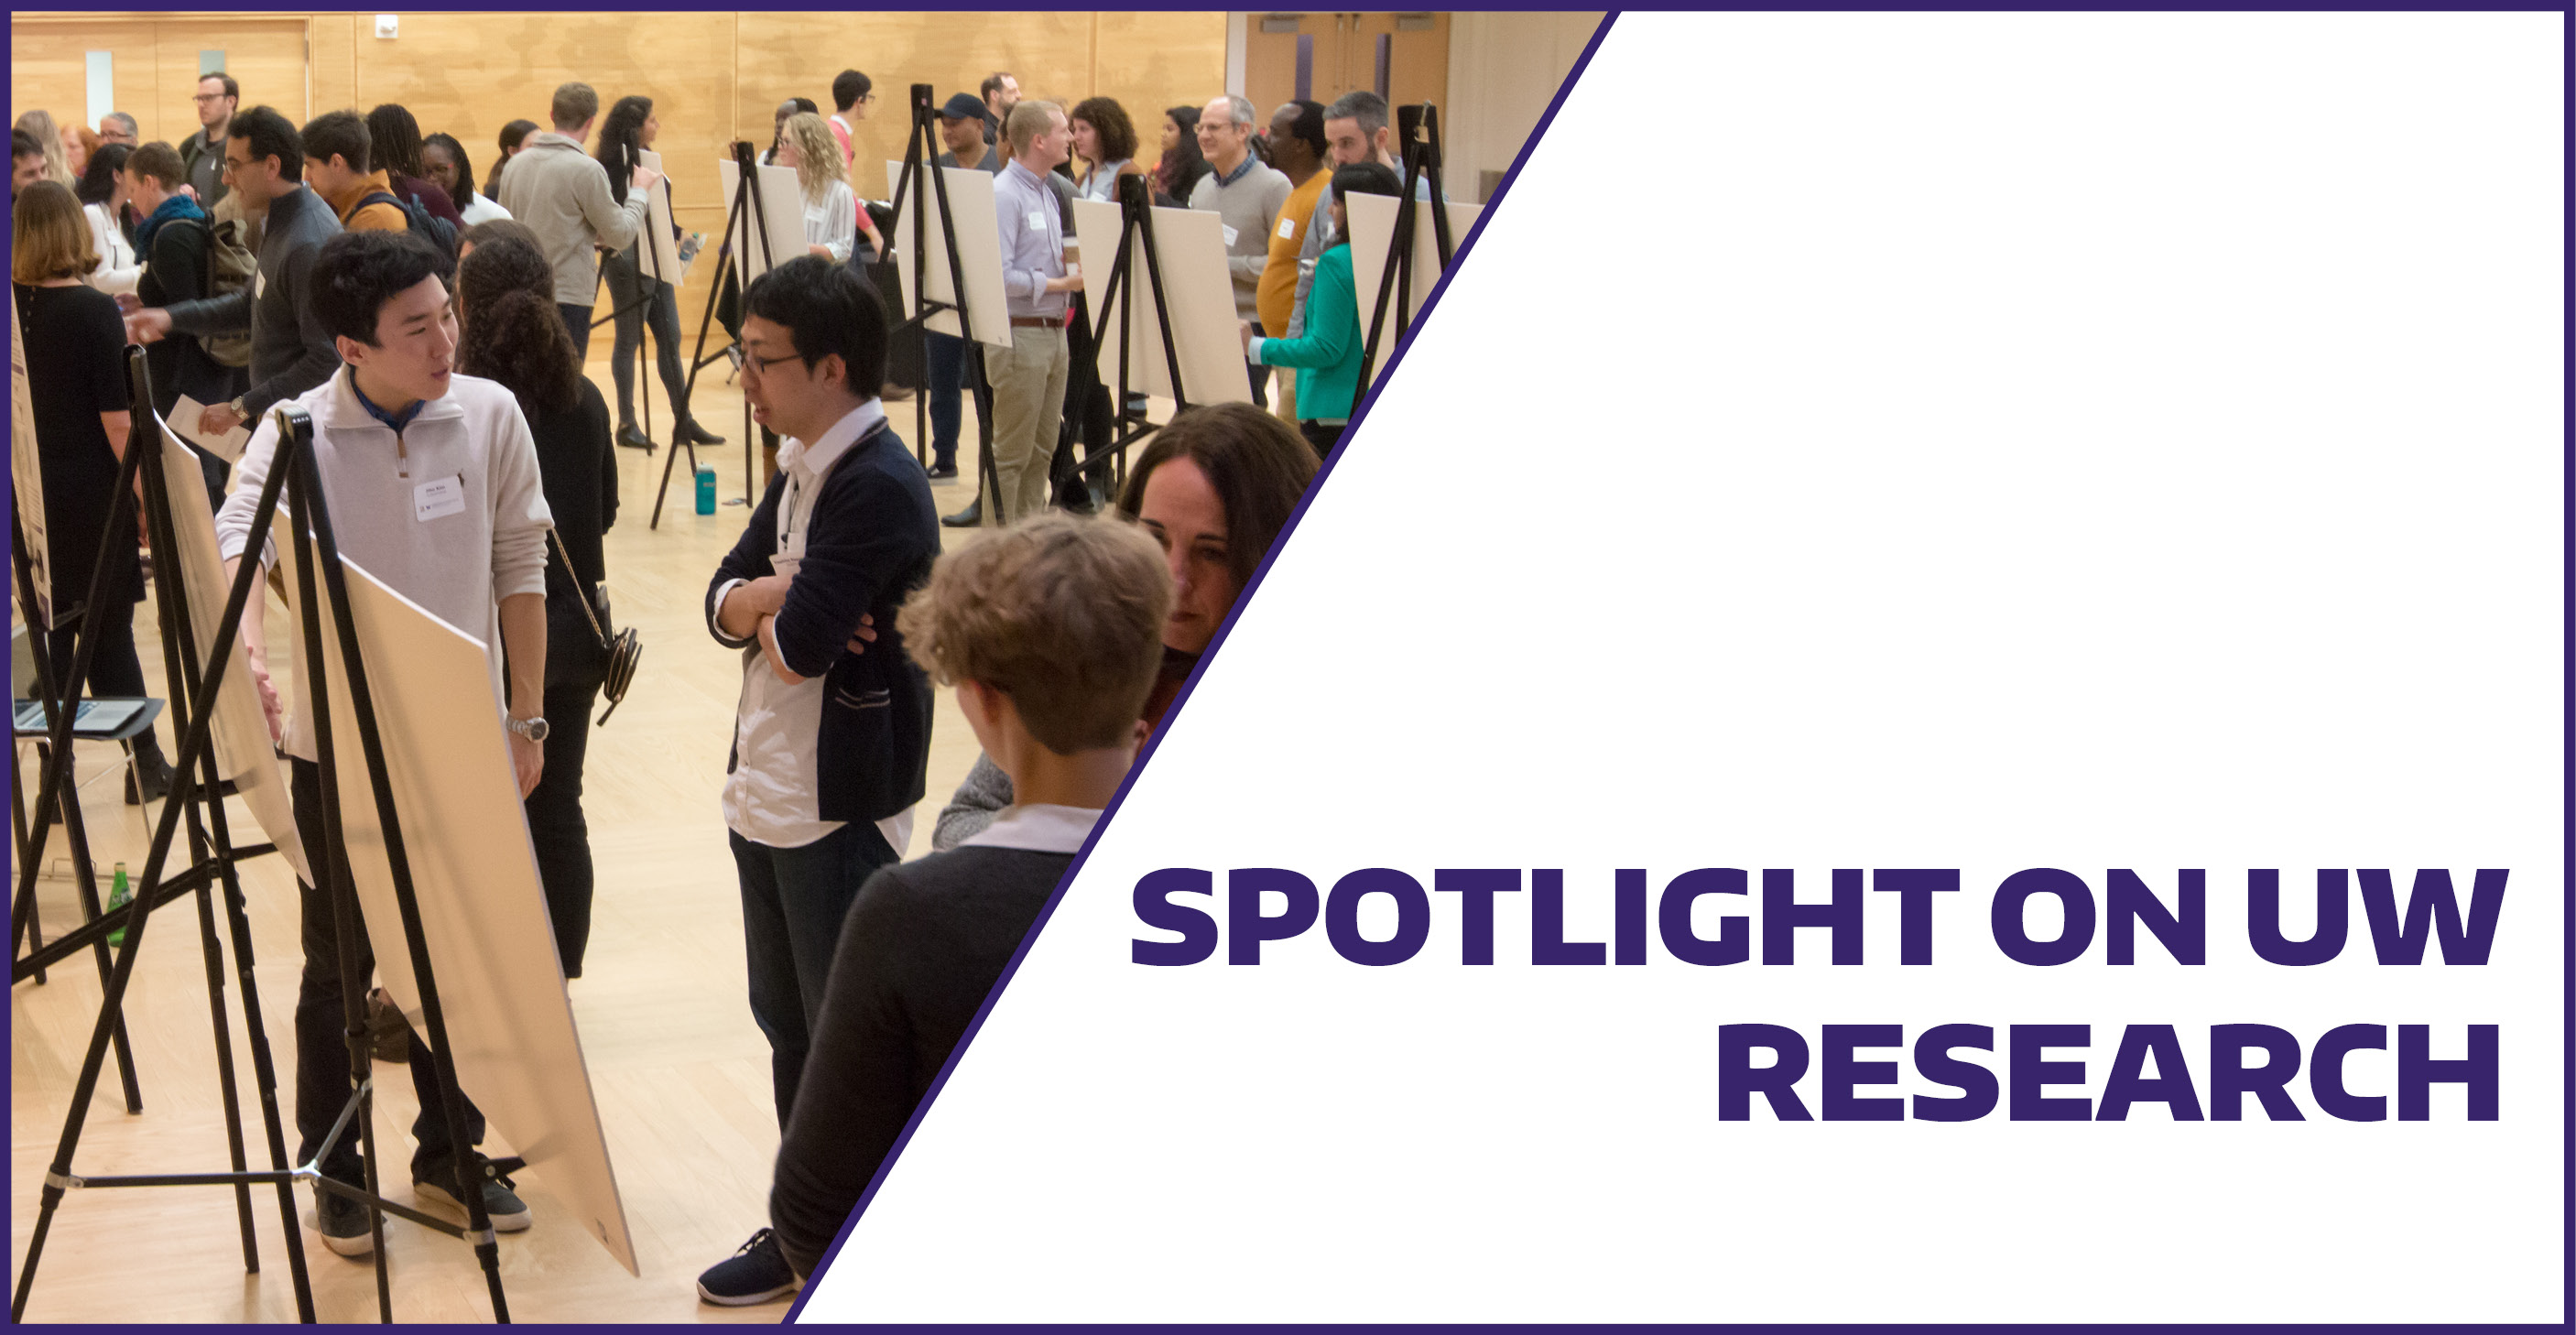 Spotlight on UW research